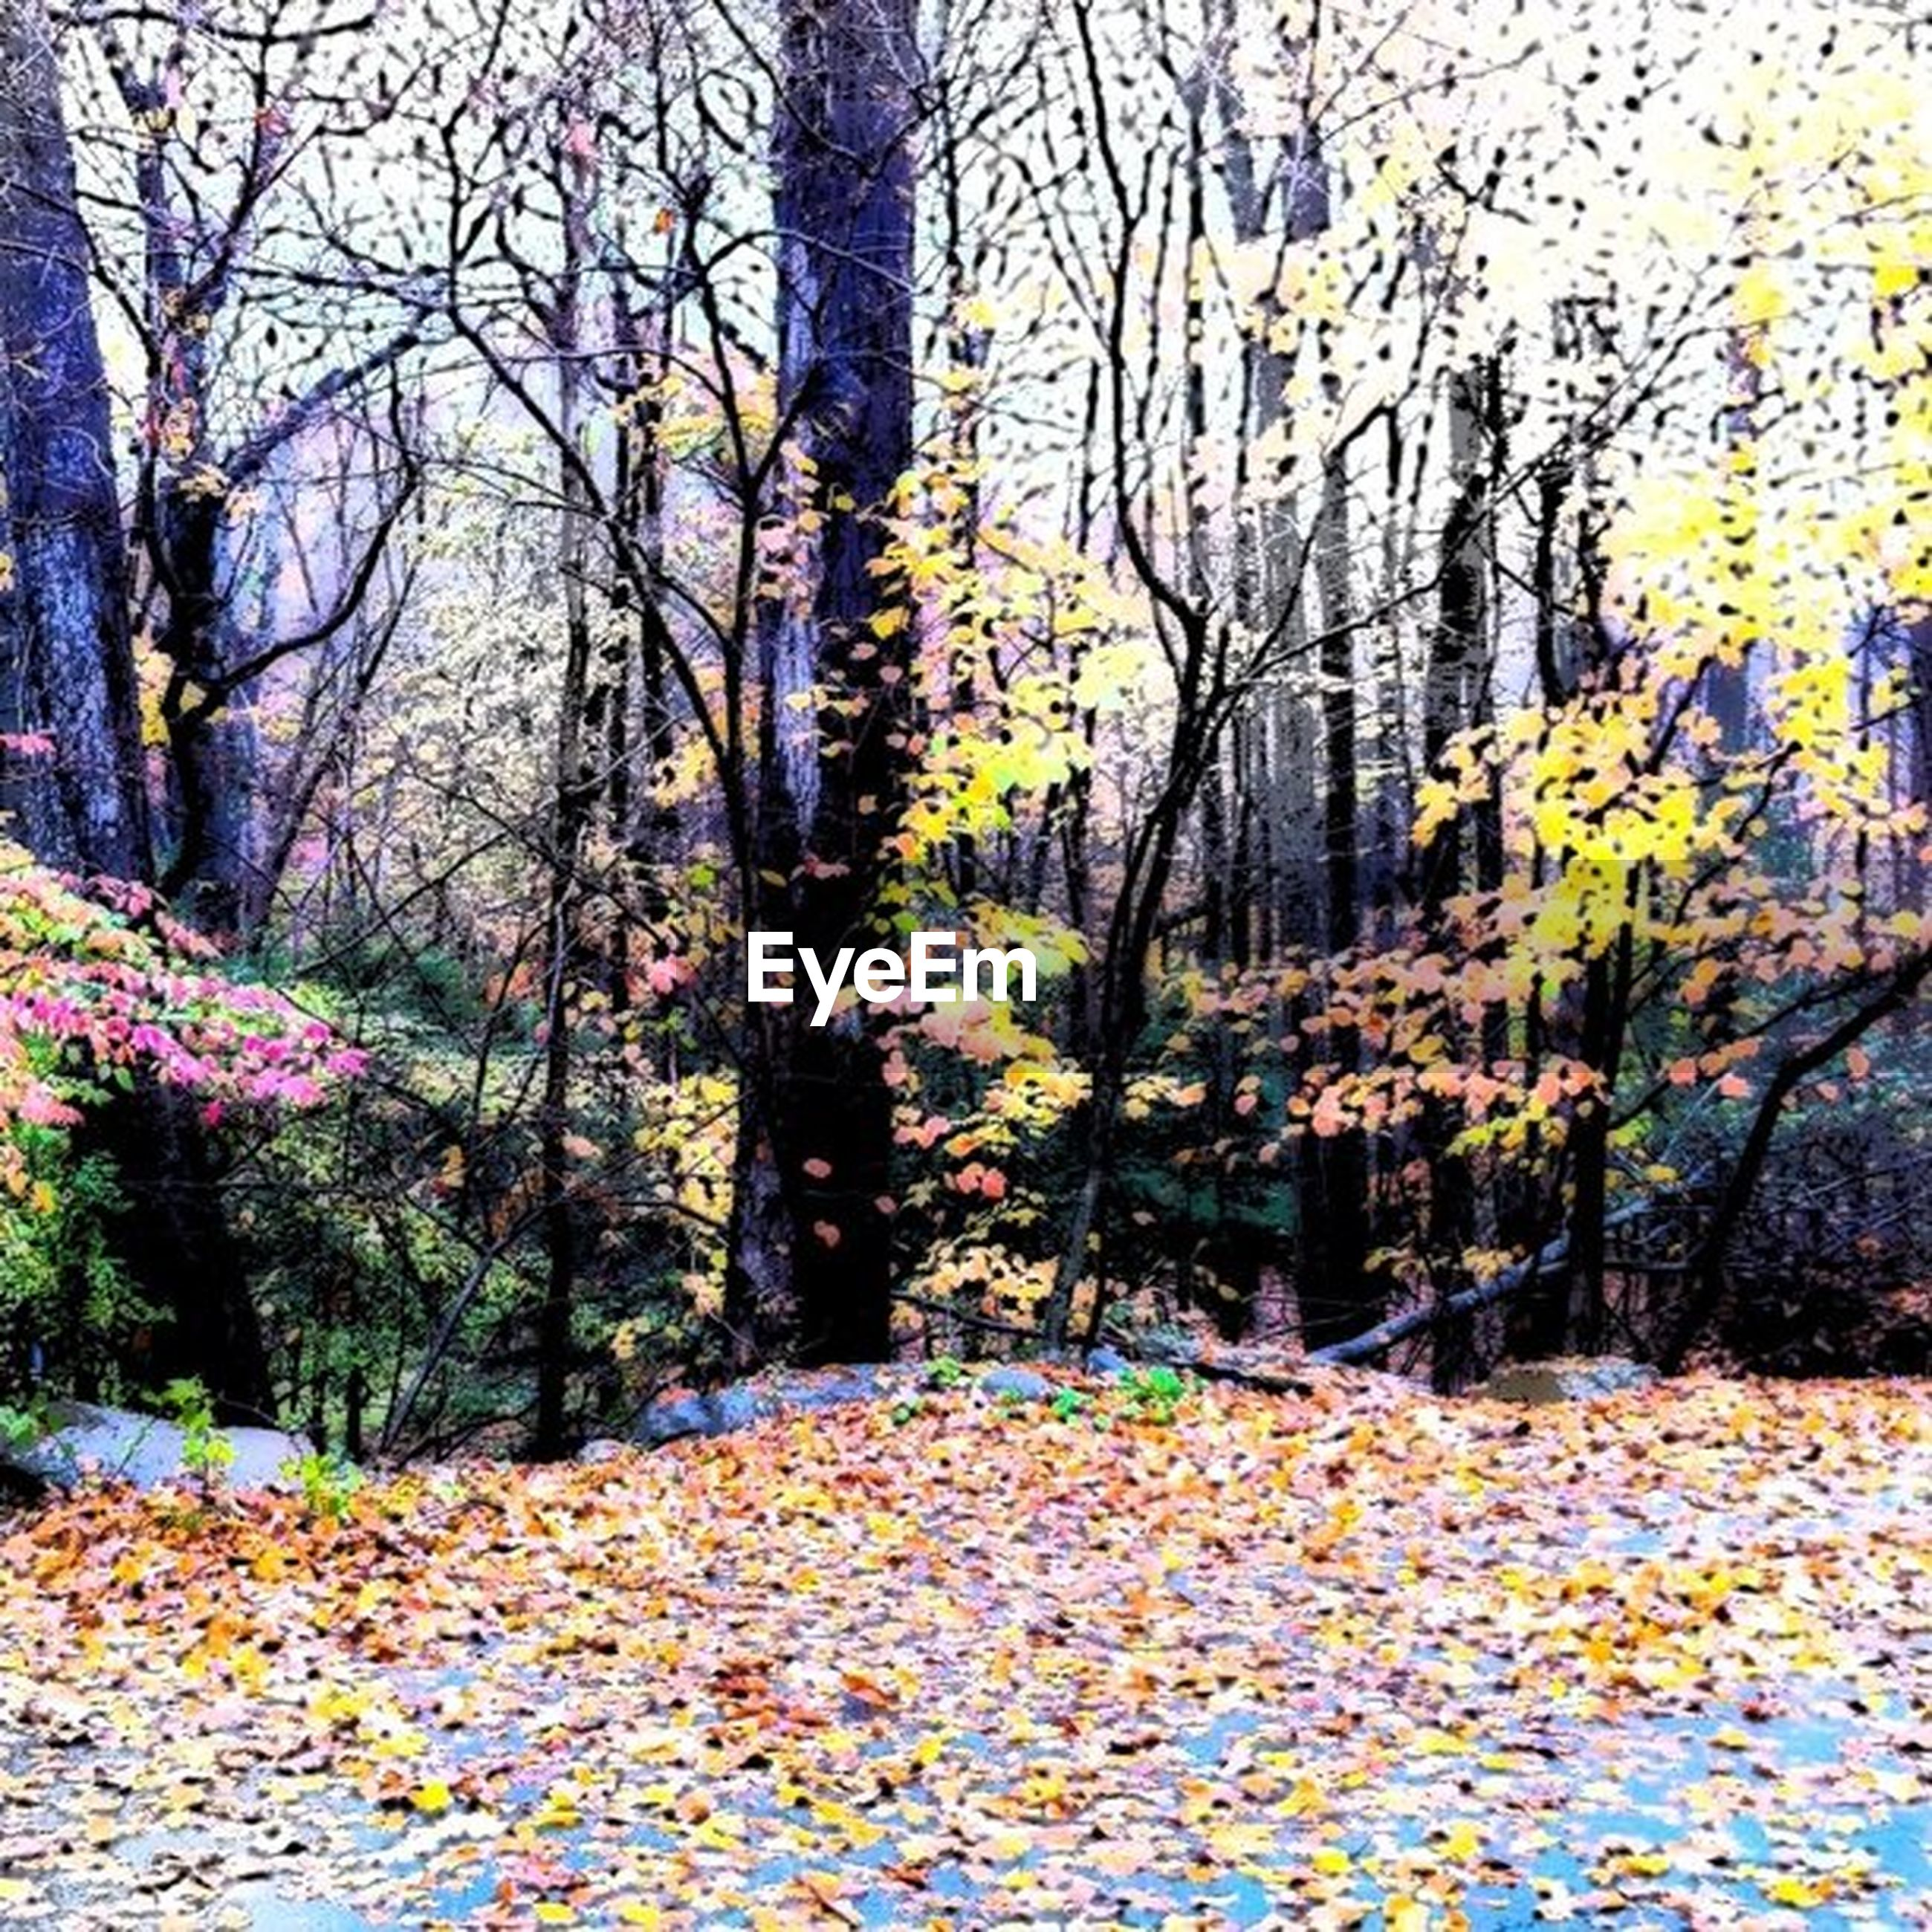 tree, autumn, change, season, tranquility, nature, beauty in nature, tree trunk, growth, tranquil scene, branch, scenics, leaf, park - man made space, yellow, fallen, day, no people, outdoors, abundance